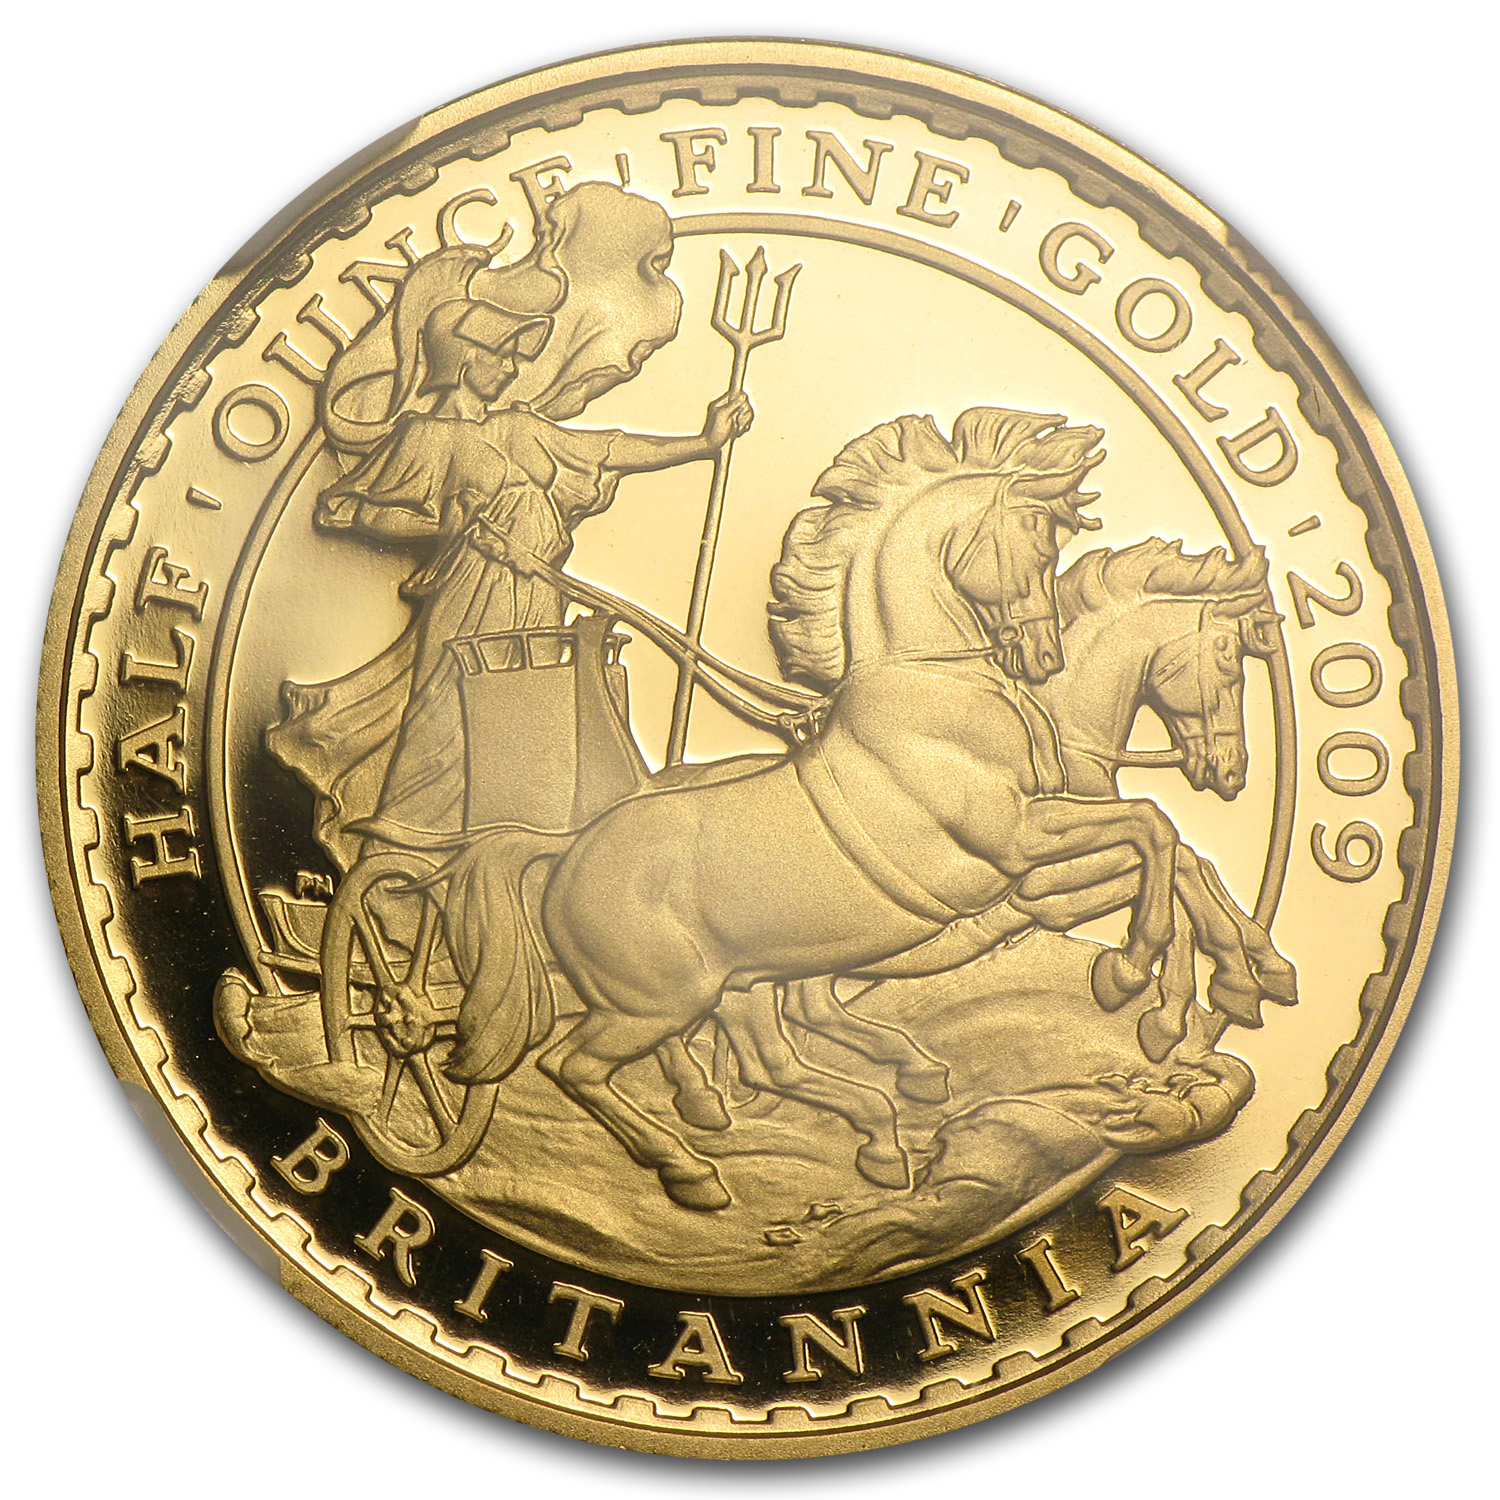 2009 Great Britain 1/2 oz Proof Gold Britannia PF-70 NGC